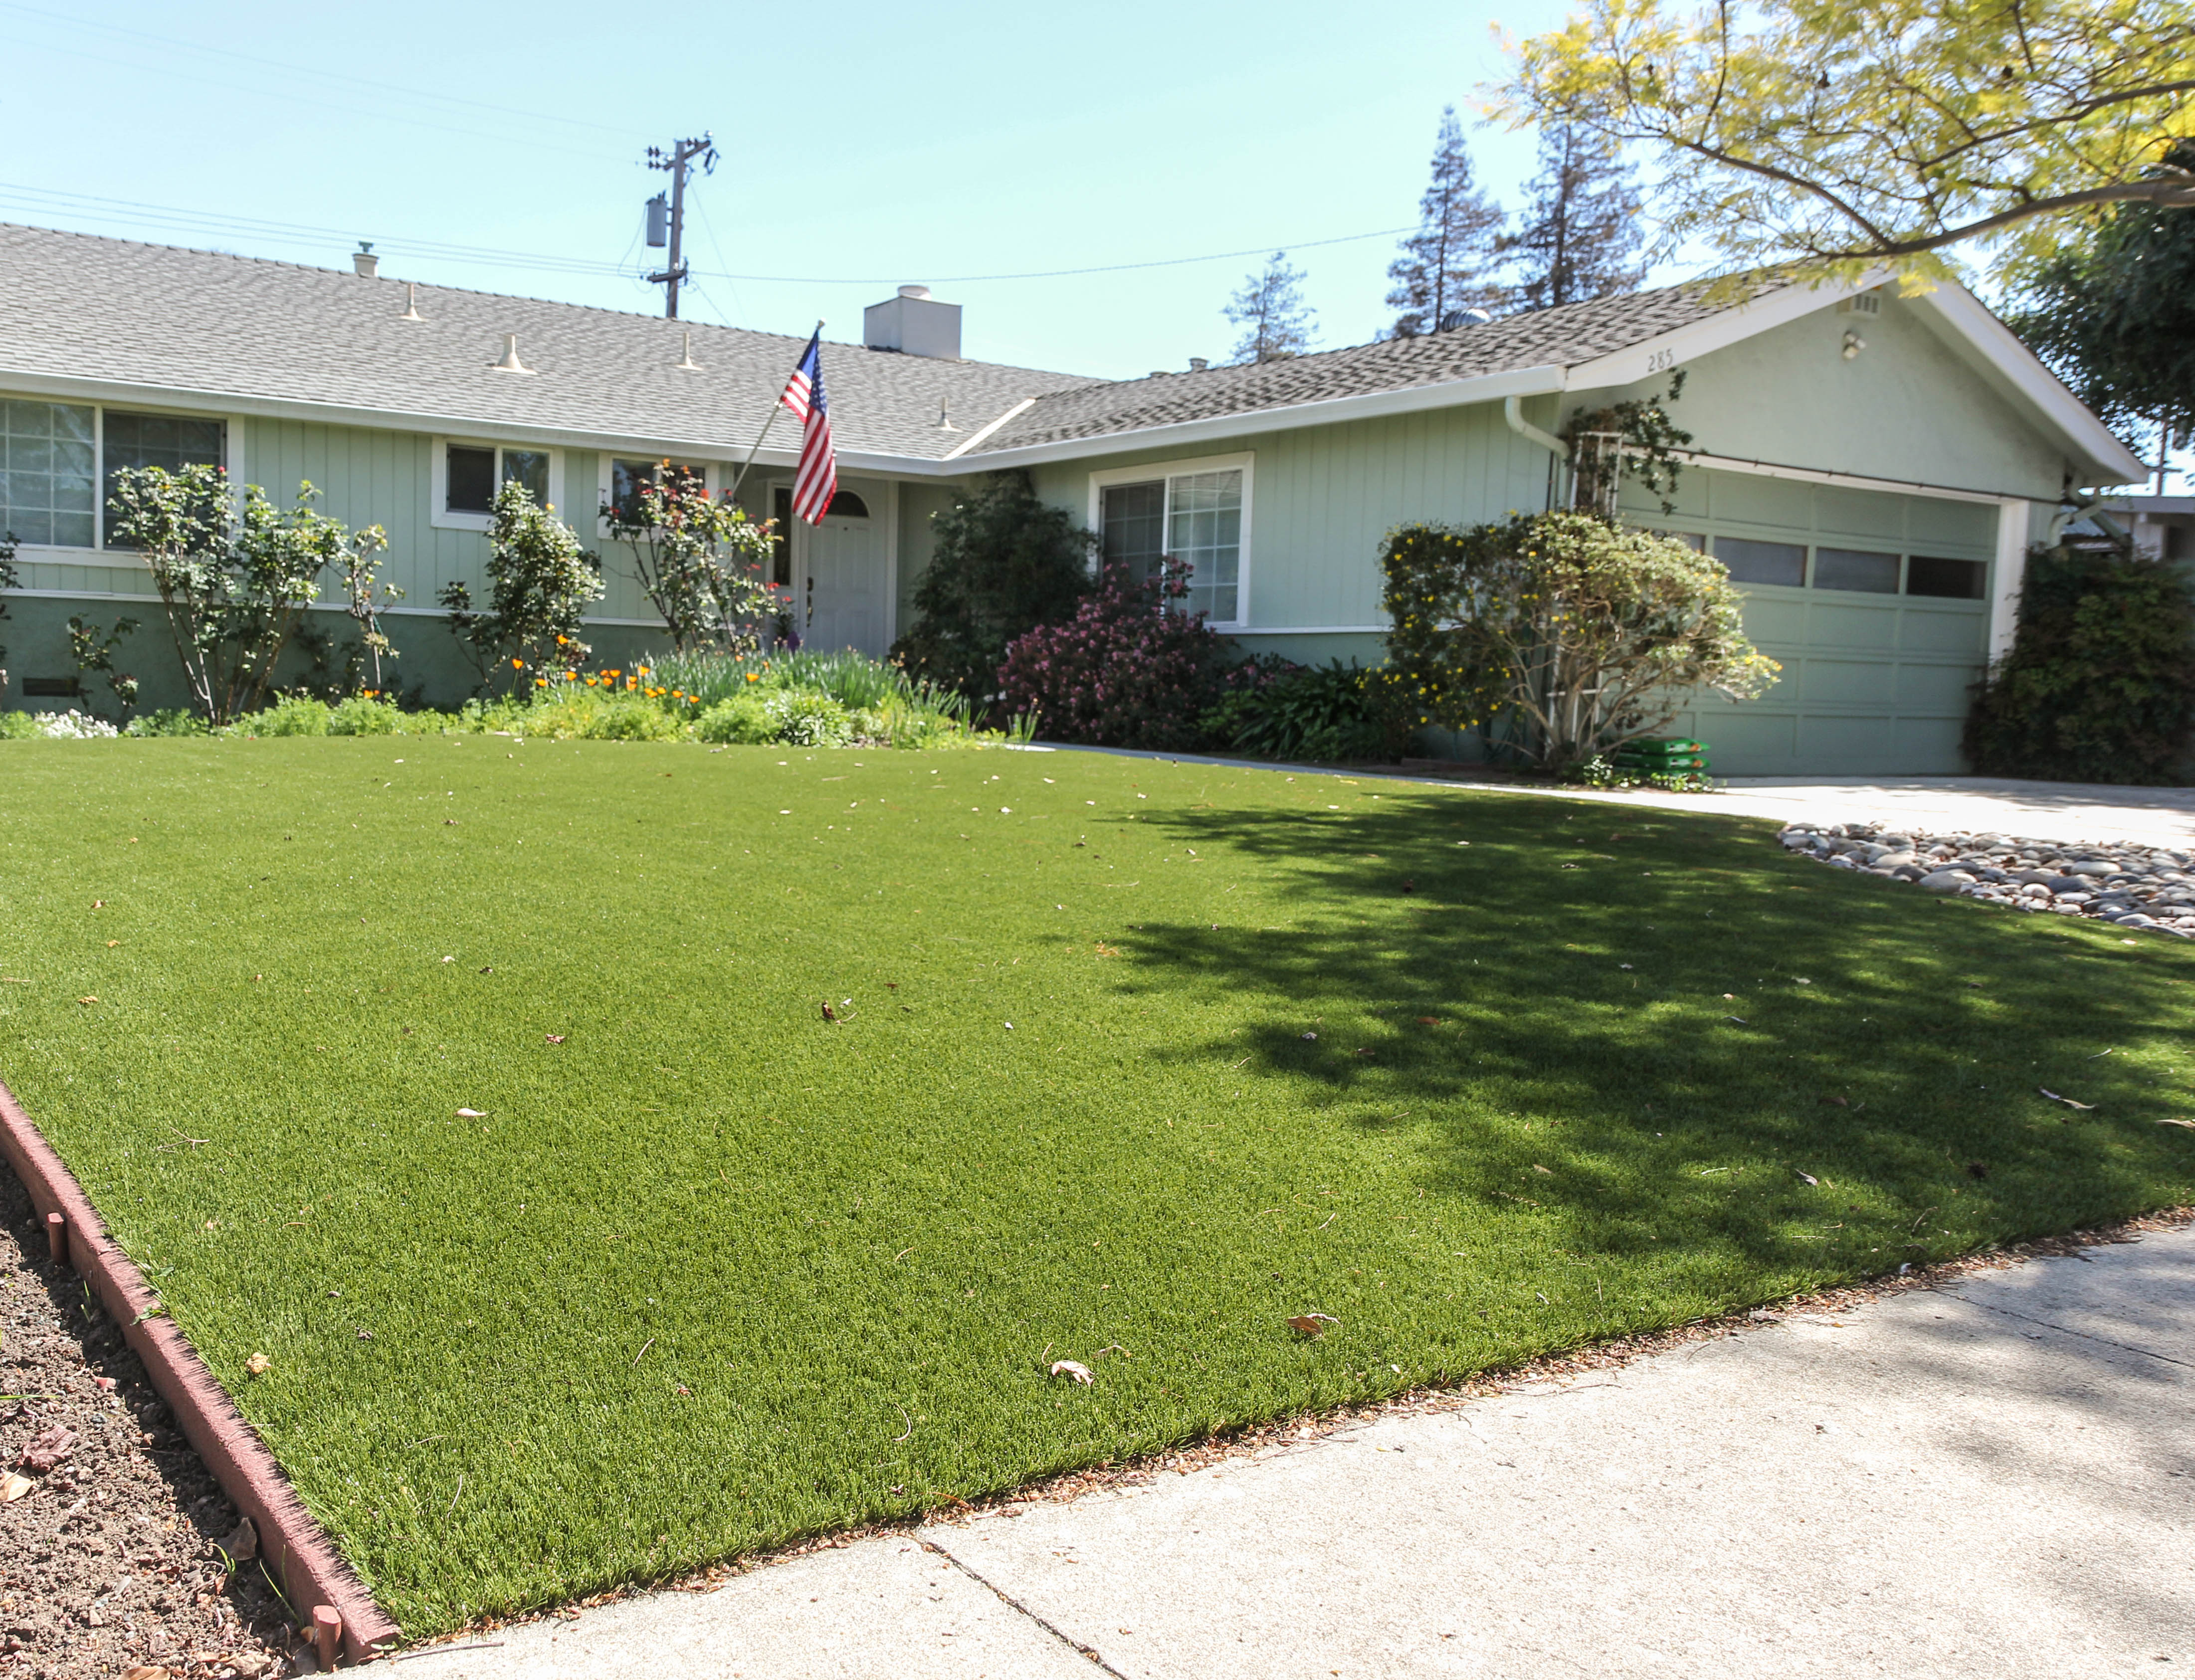 artificial grass installed in a Santa Clara, california yard